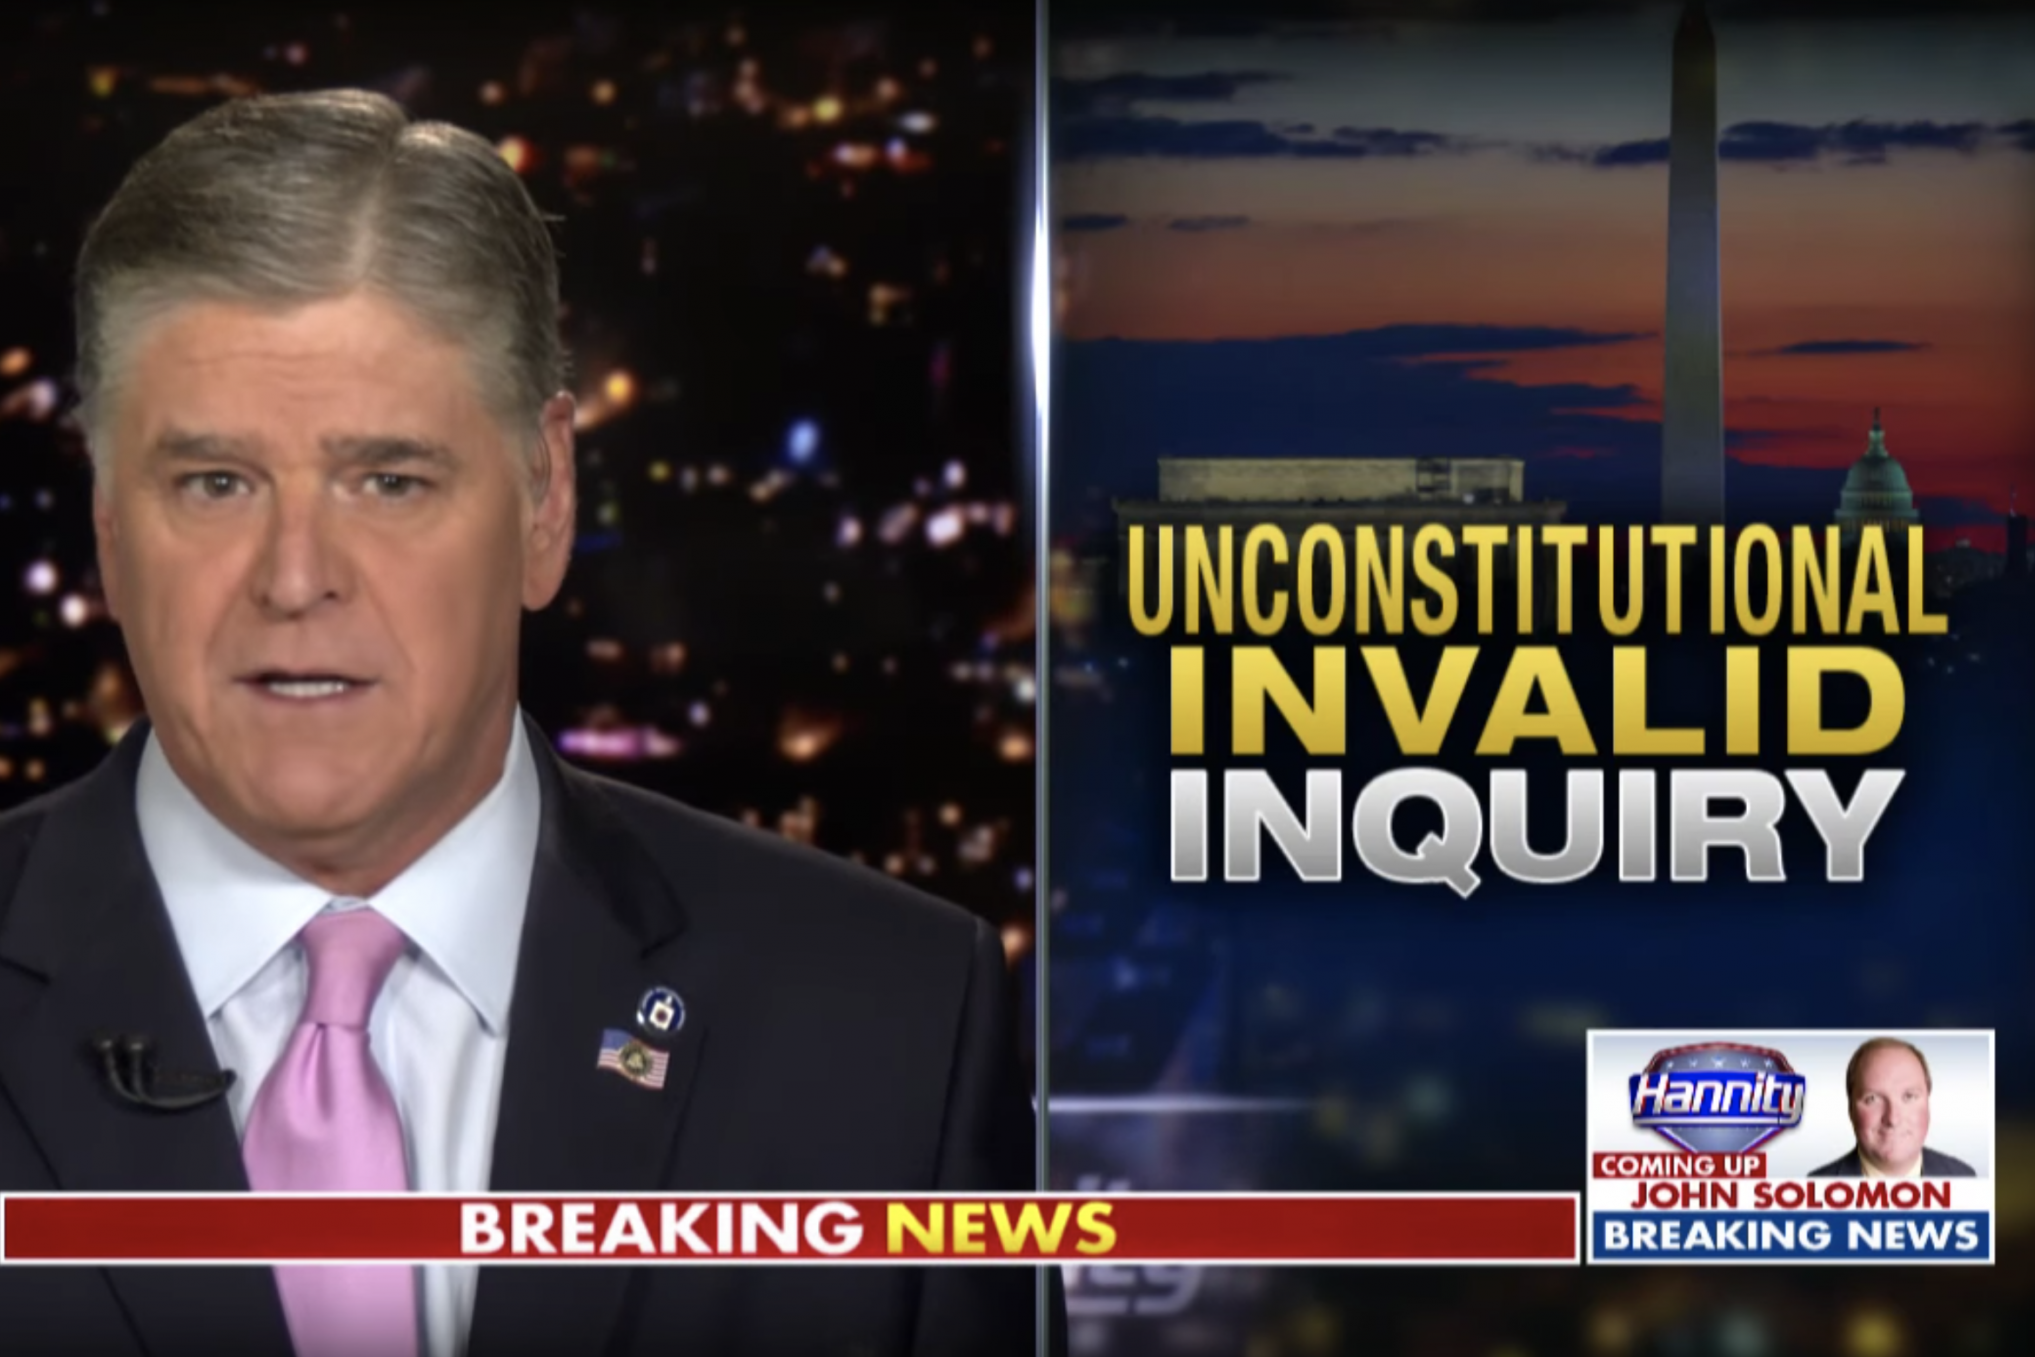 A week inside the Fox News bubble: From daytime sanity to prime-time Hannity